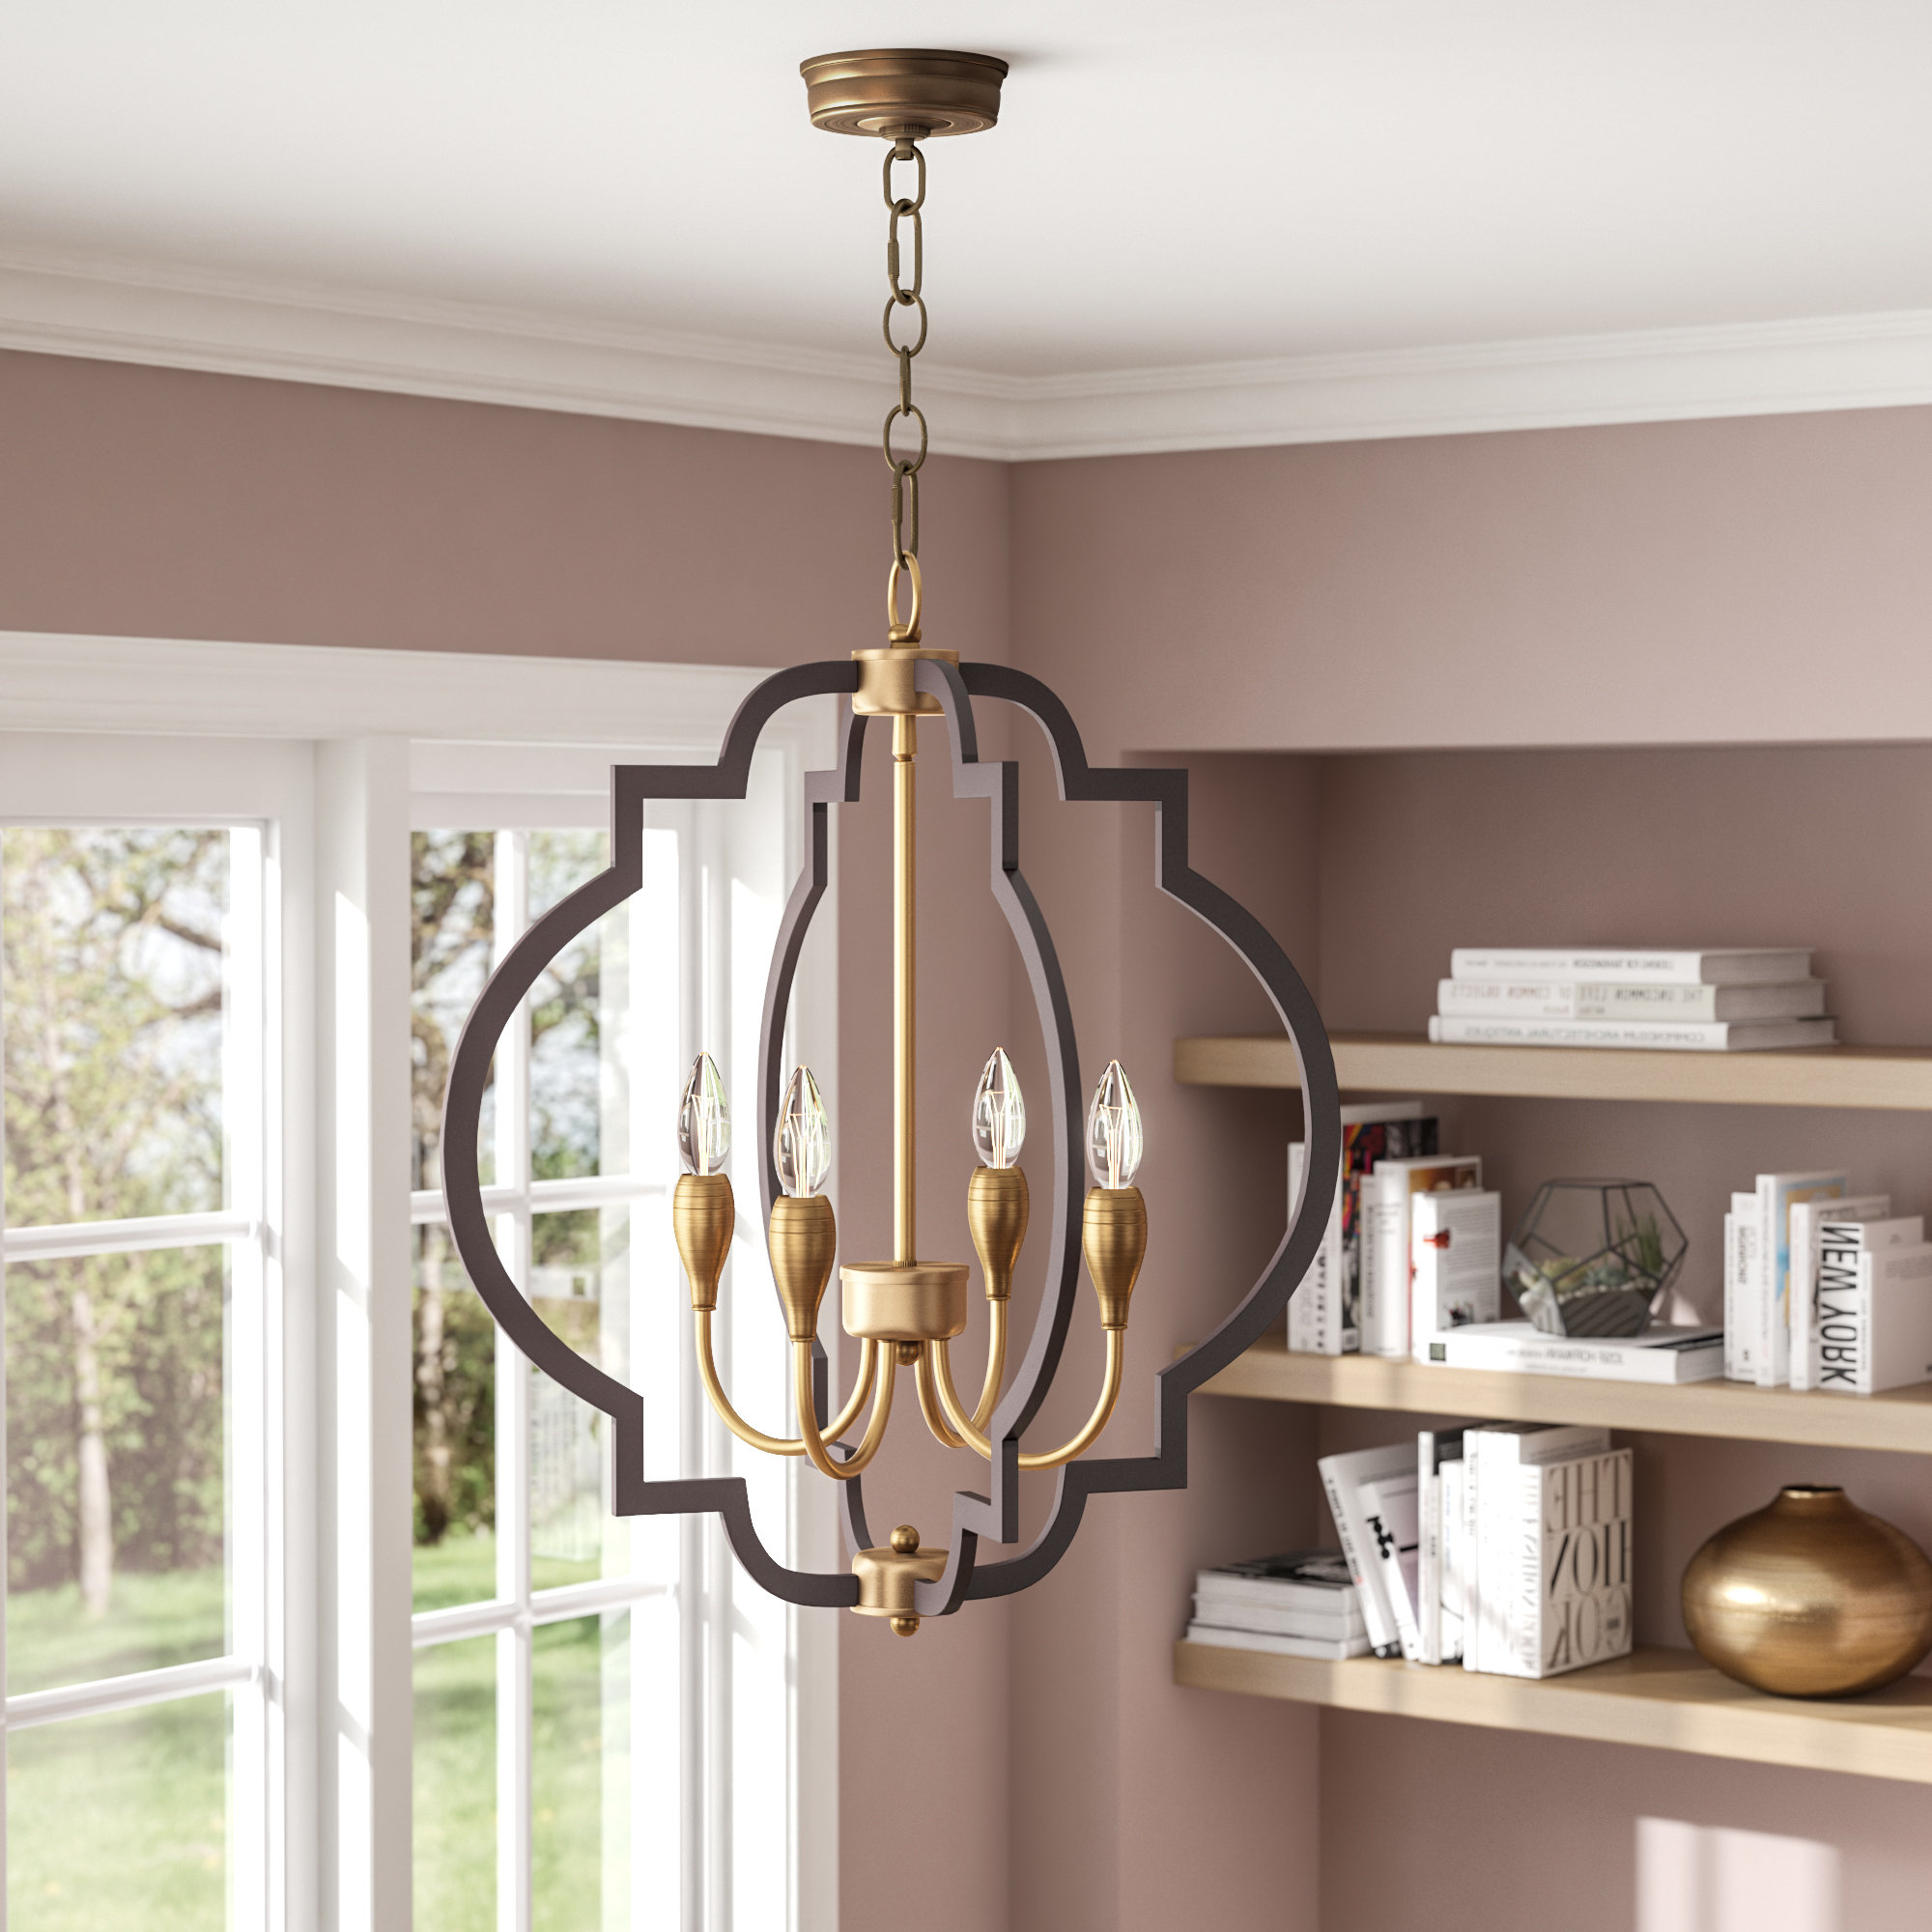 Astin 4 Light Geometric Chandelier For Most Recently Released Kaycee 4 Light Geometric Chandeliers (View 4 of 25)